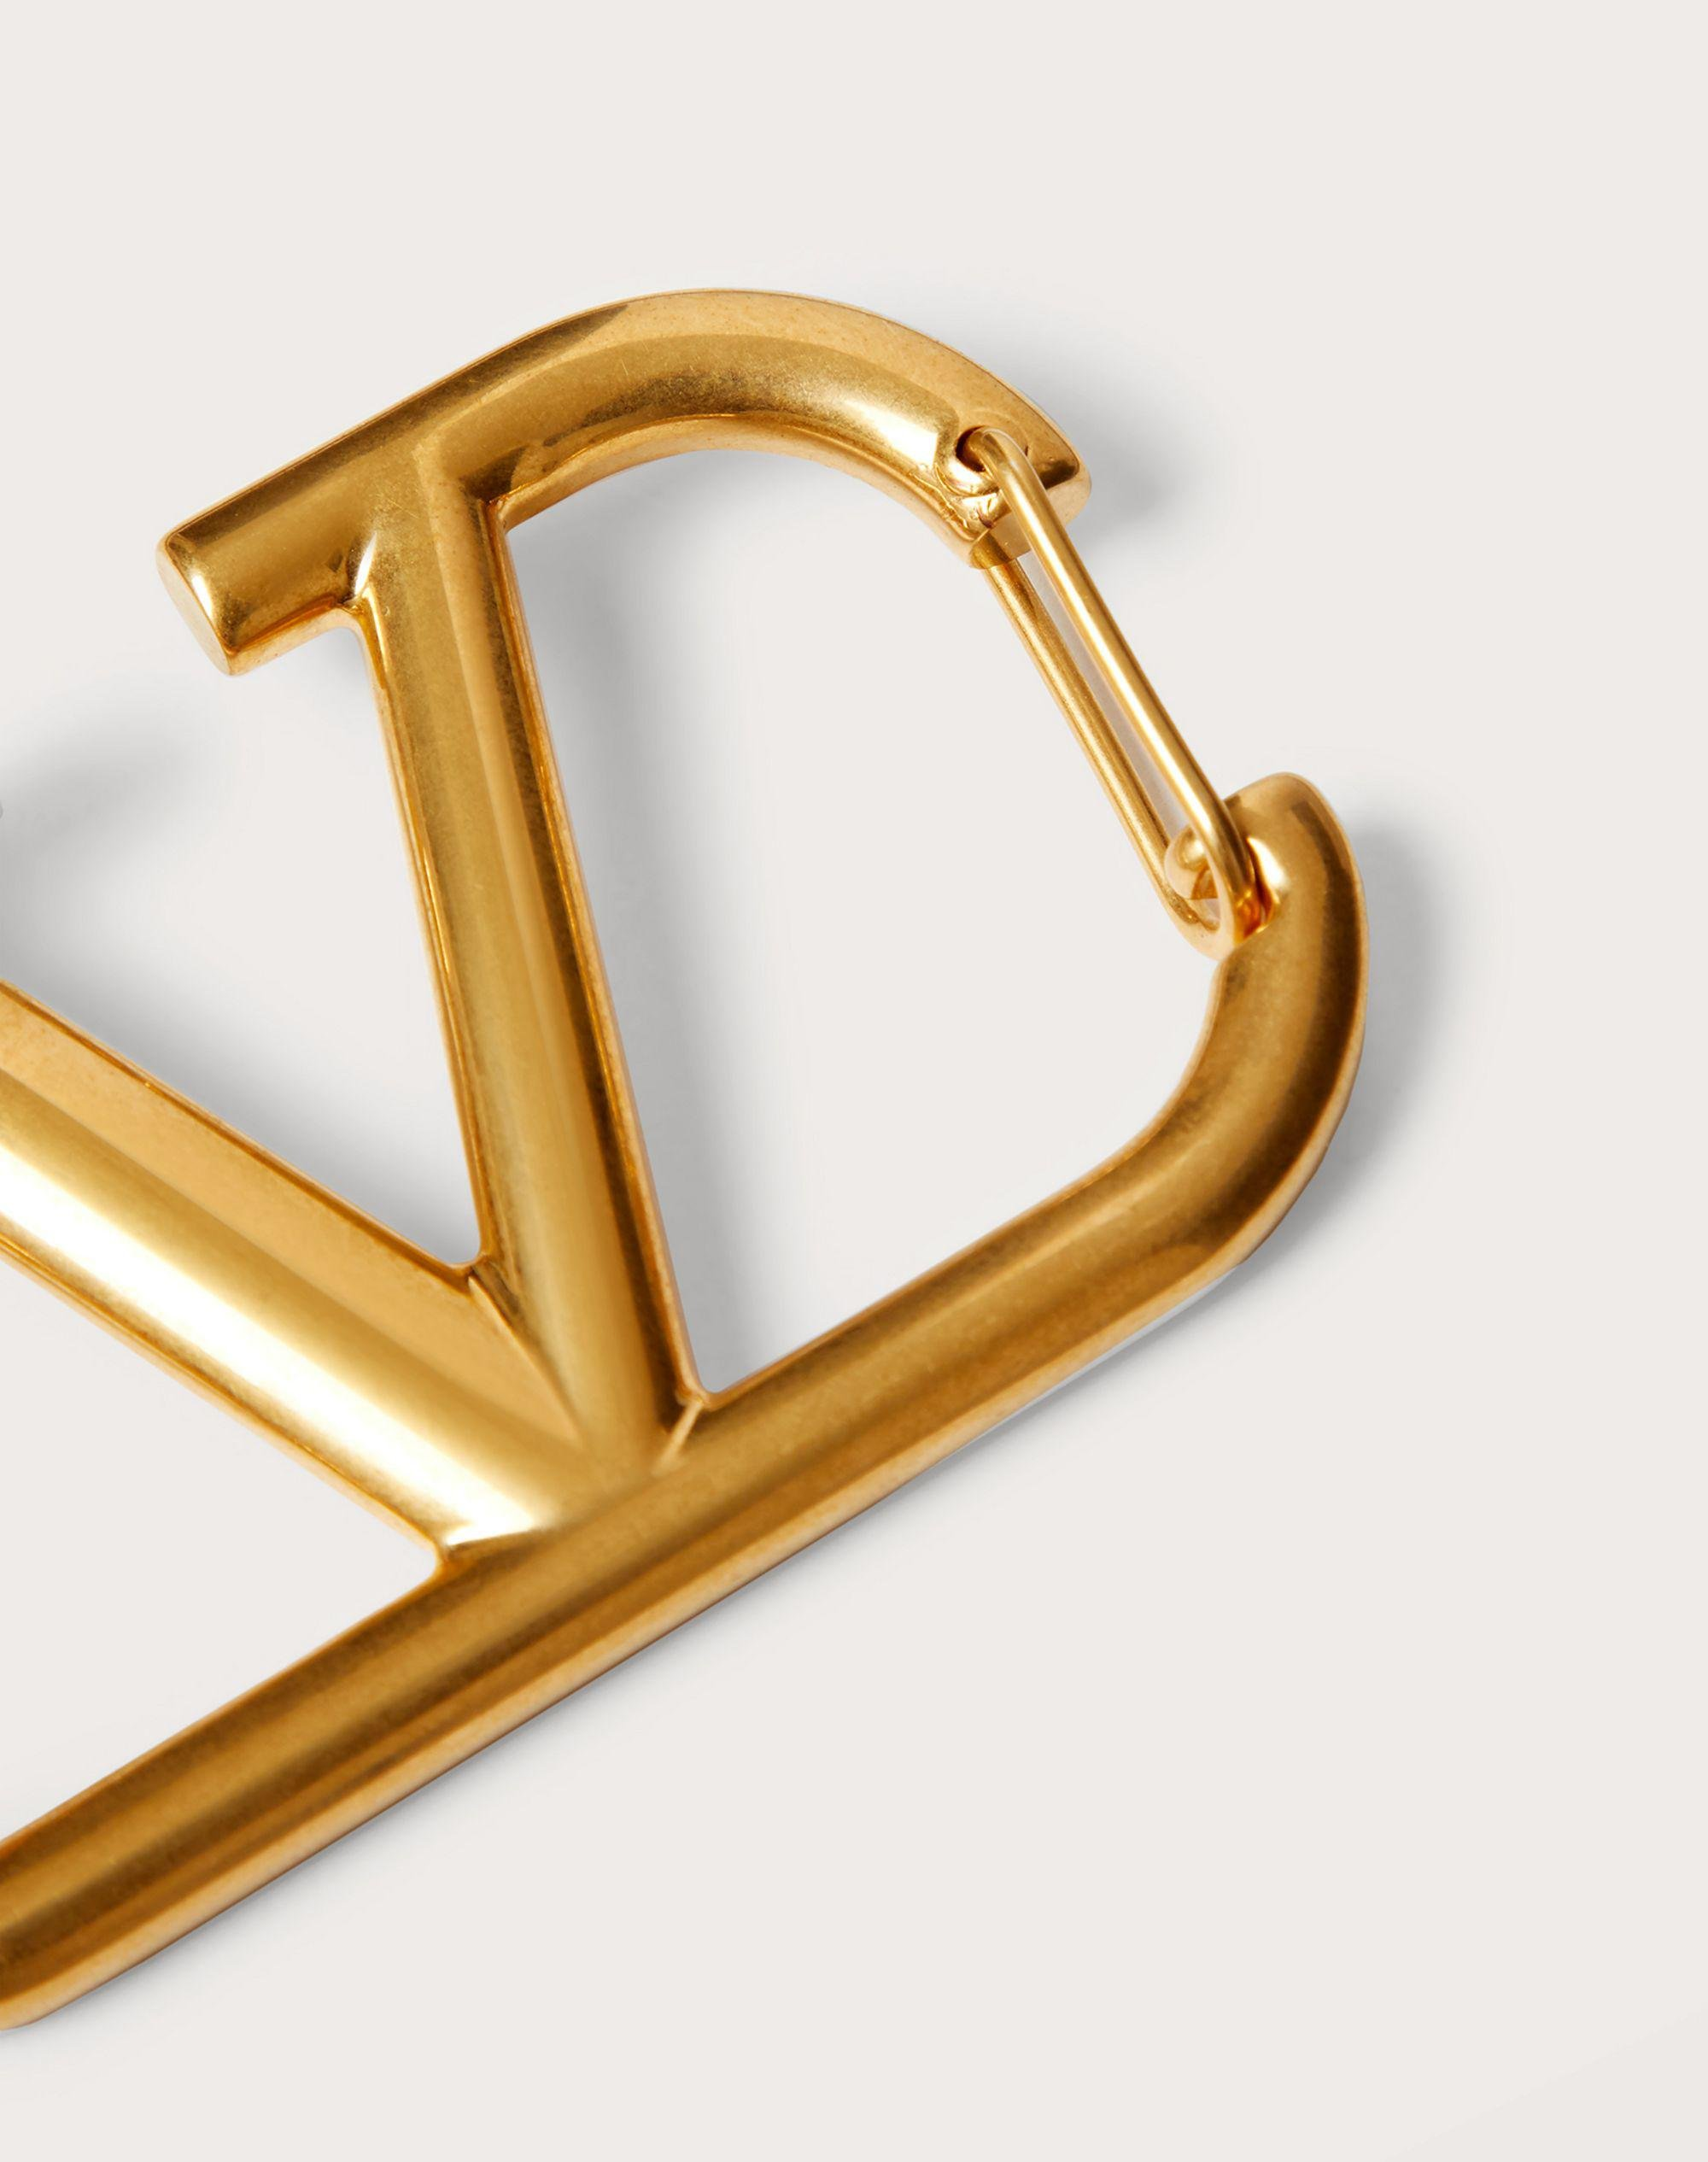 VLOGO SIGNATURE KEYCHAIN IN LACQUERED METAL 2